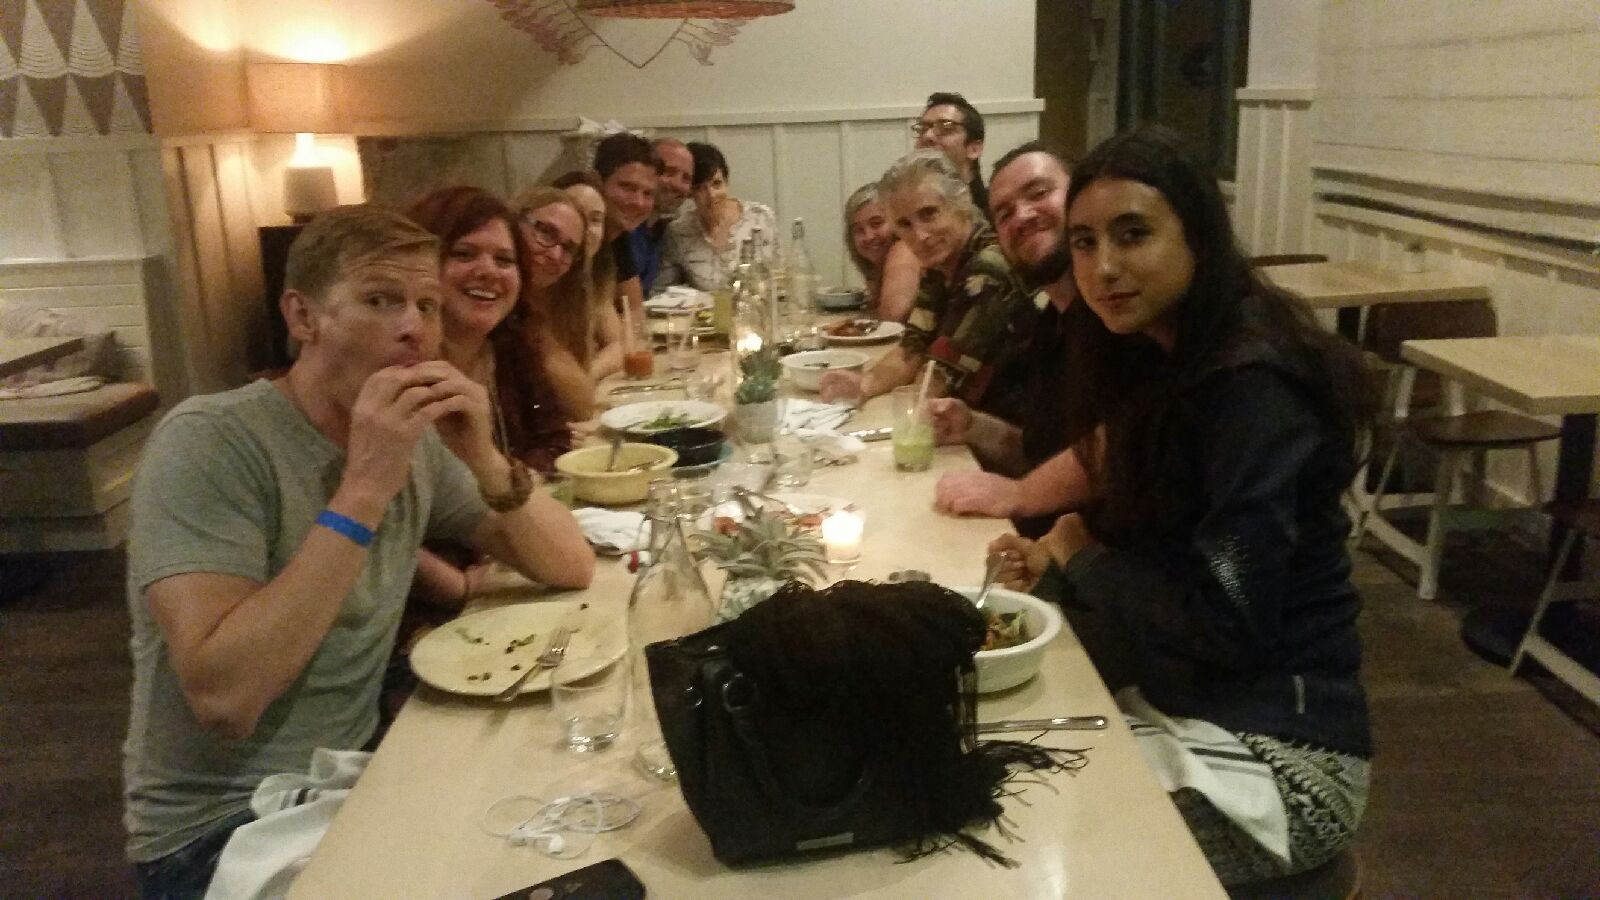 Channelers and Crew at Dinner